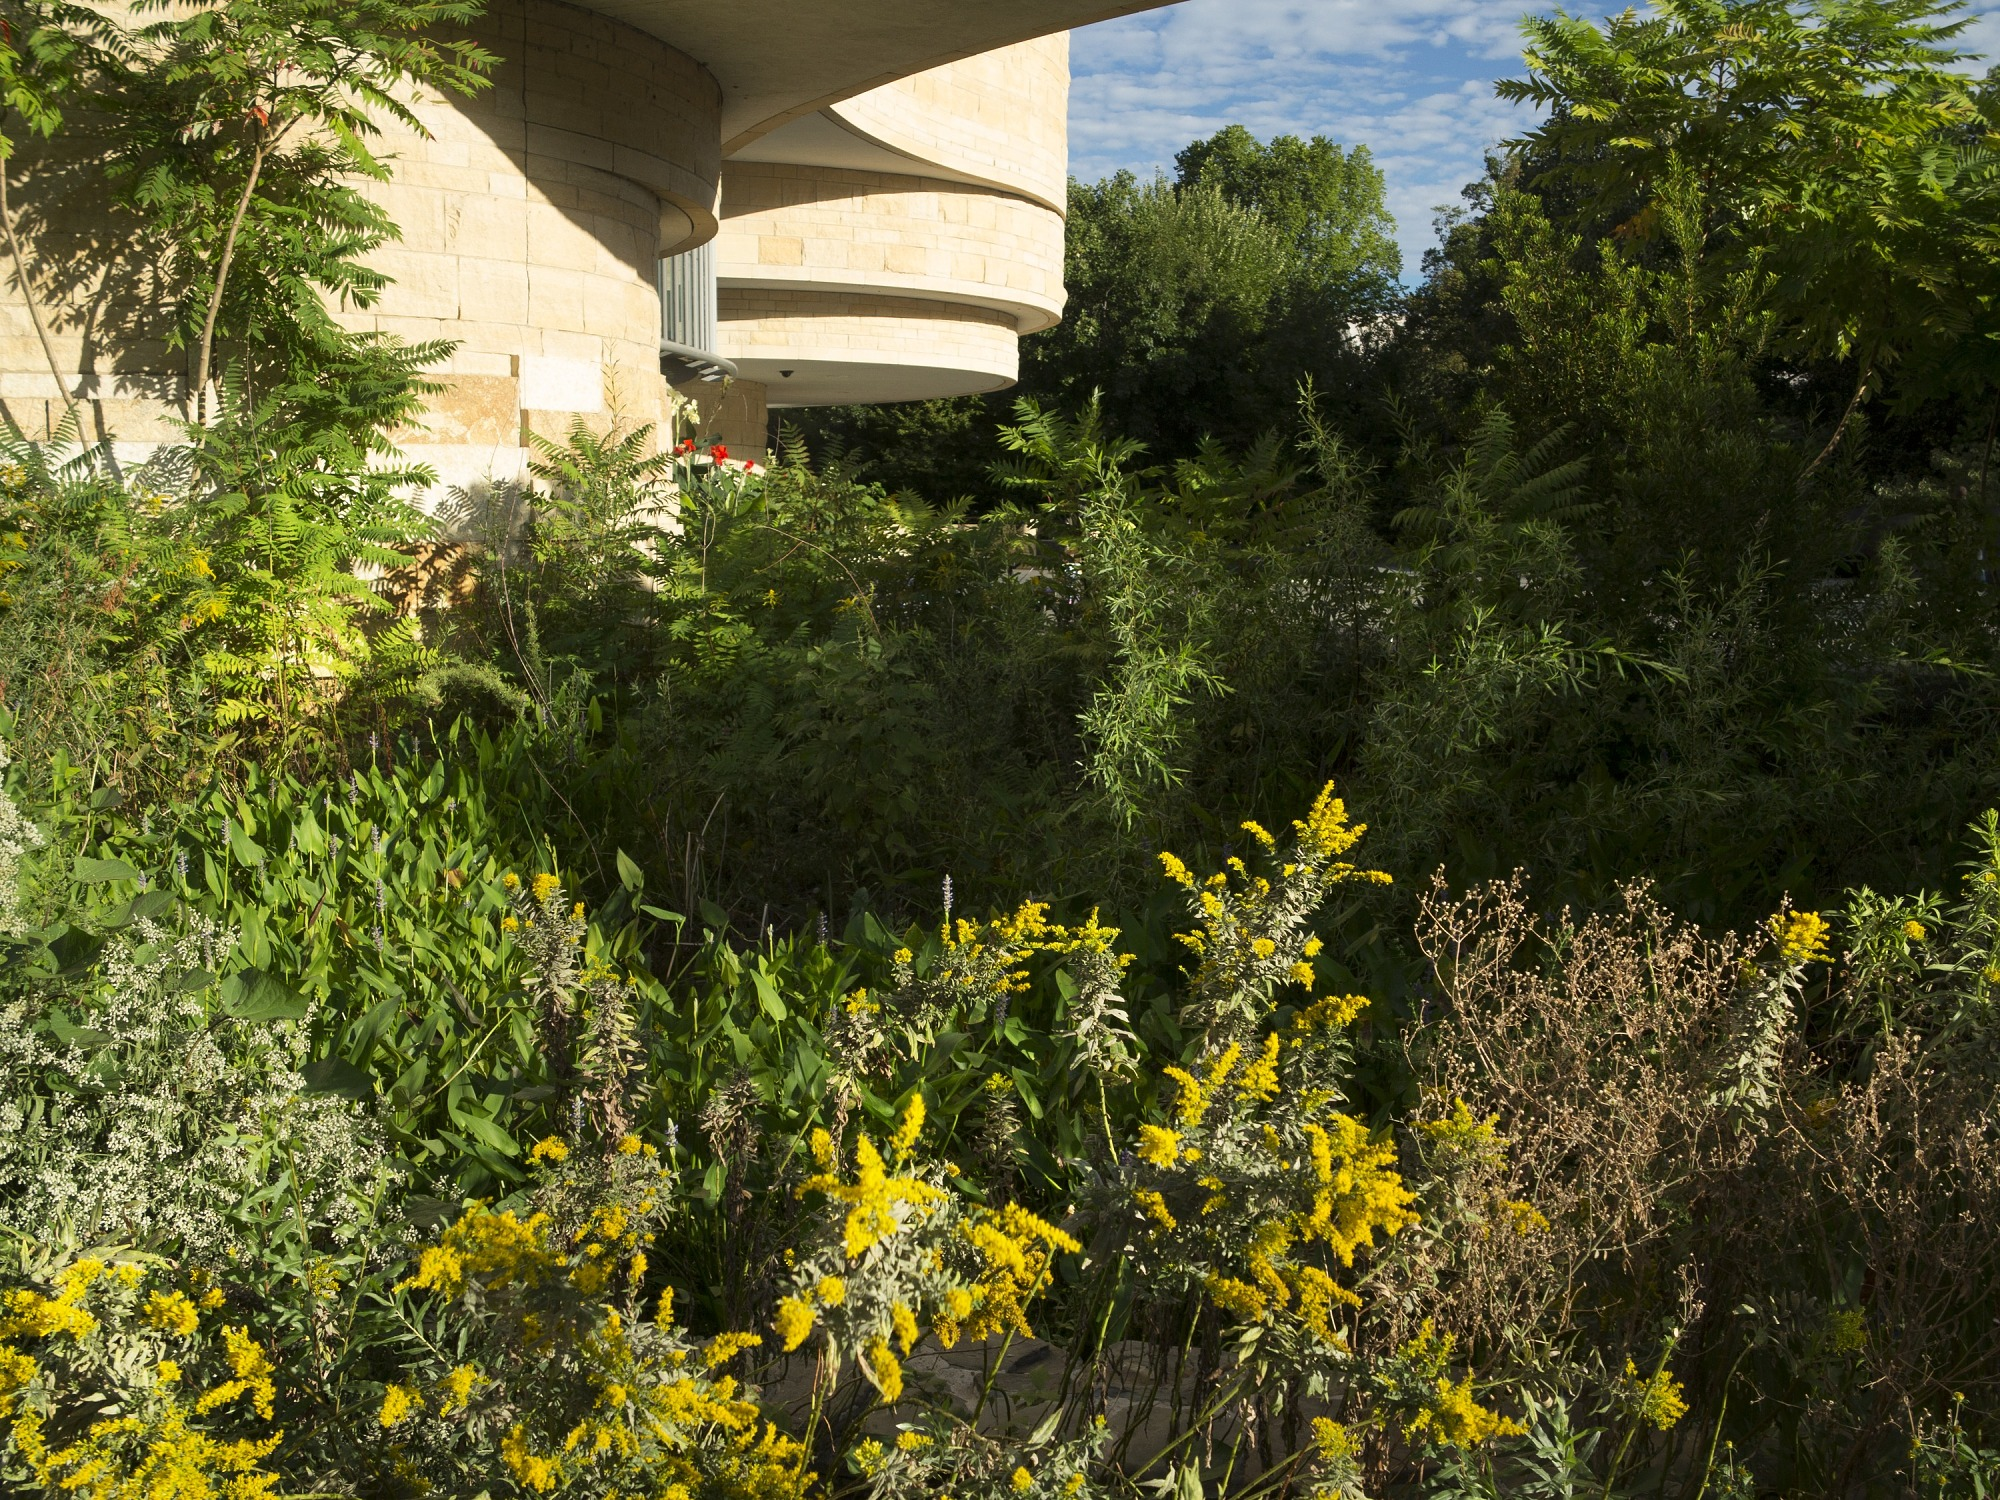 Goldenrod and milkweed in front of museum building